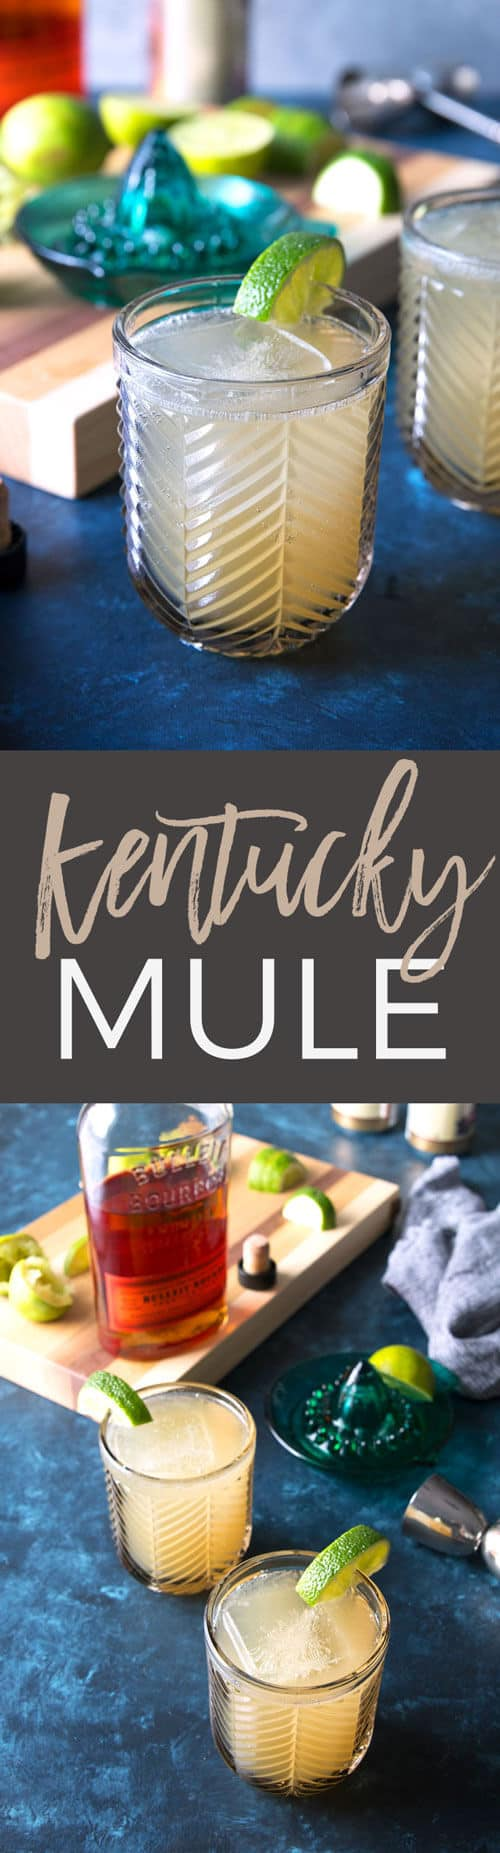 Kentucky Mule recipe pin